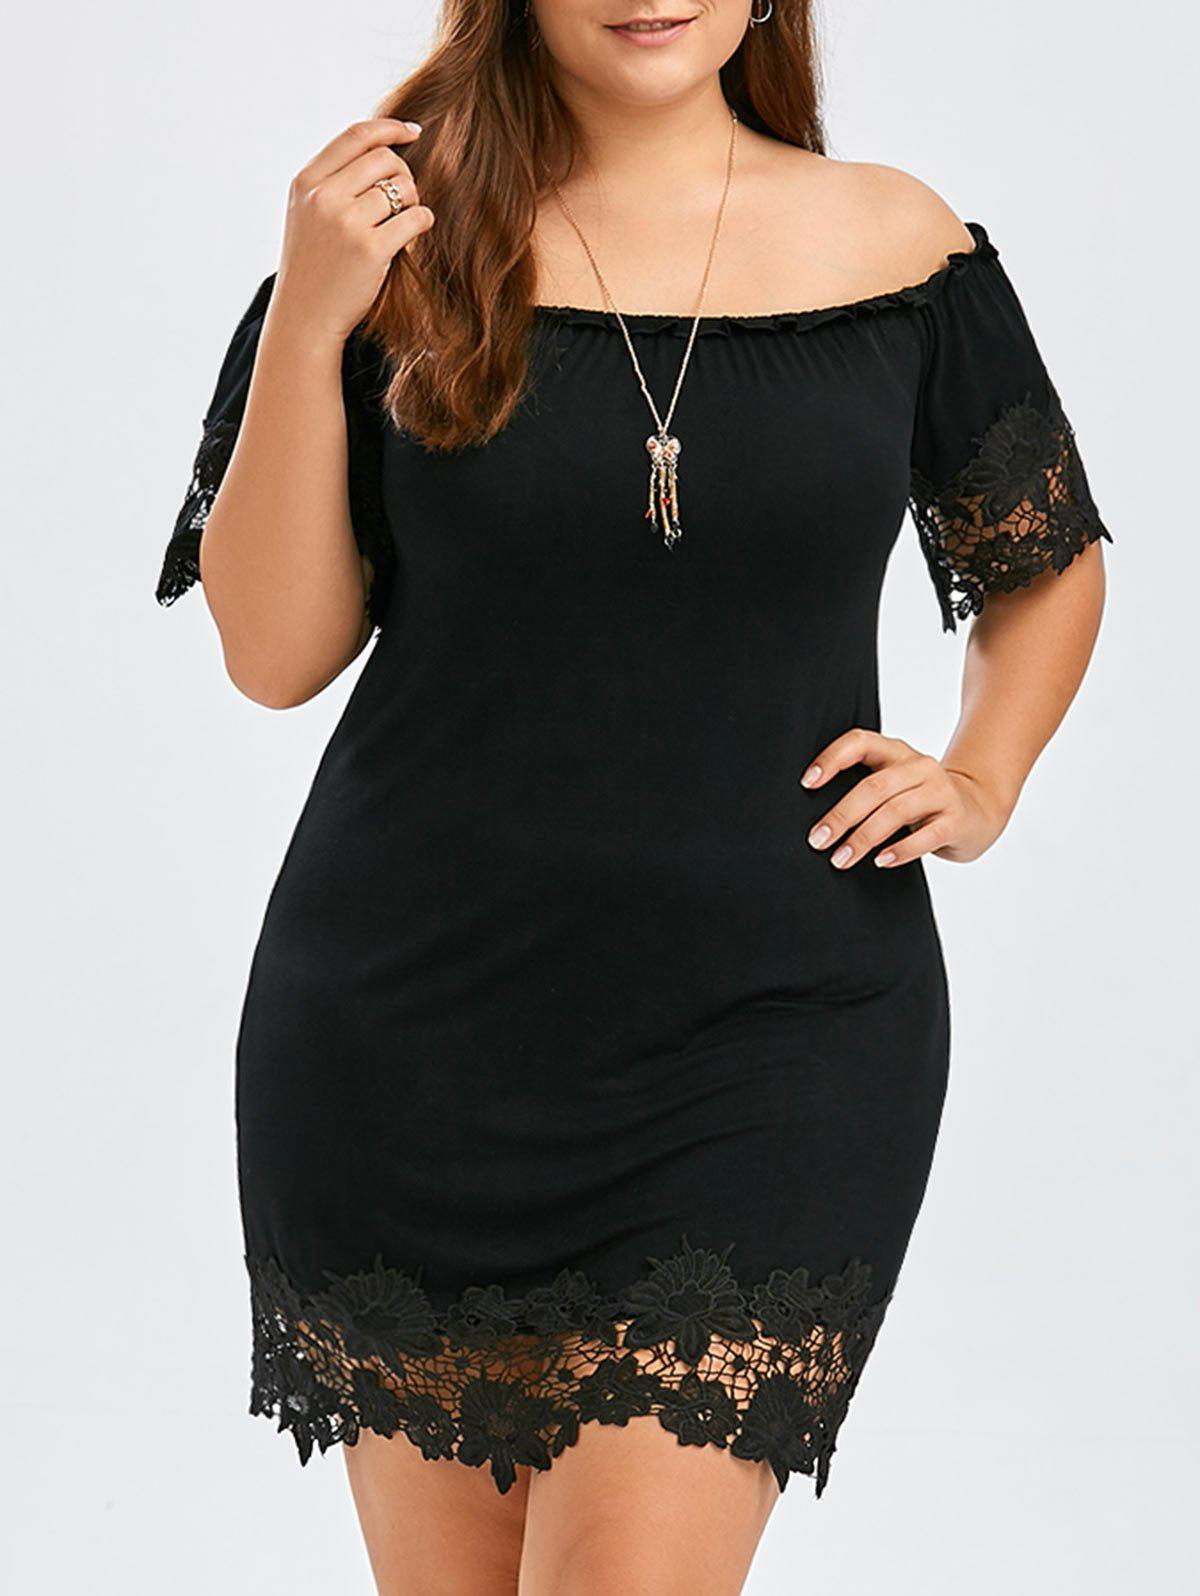 f0ca6eeb010 Off Shoulder Plus Size Cocktail Mini Tight Dress - 2xl. rosegal